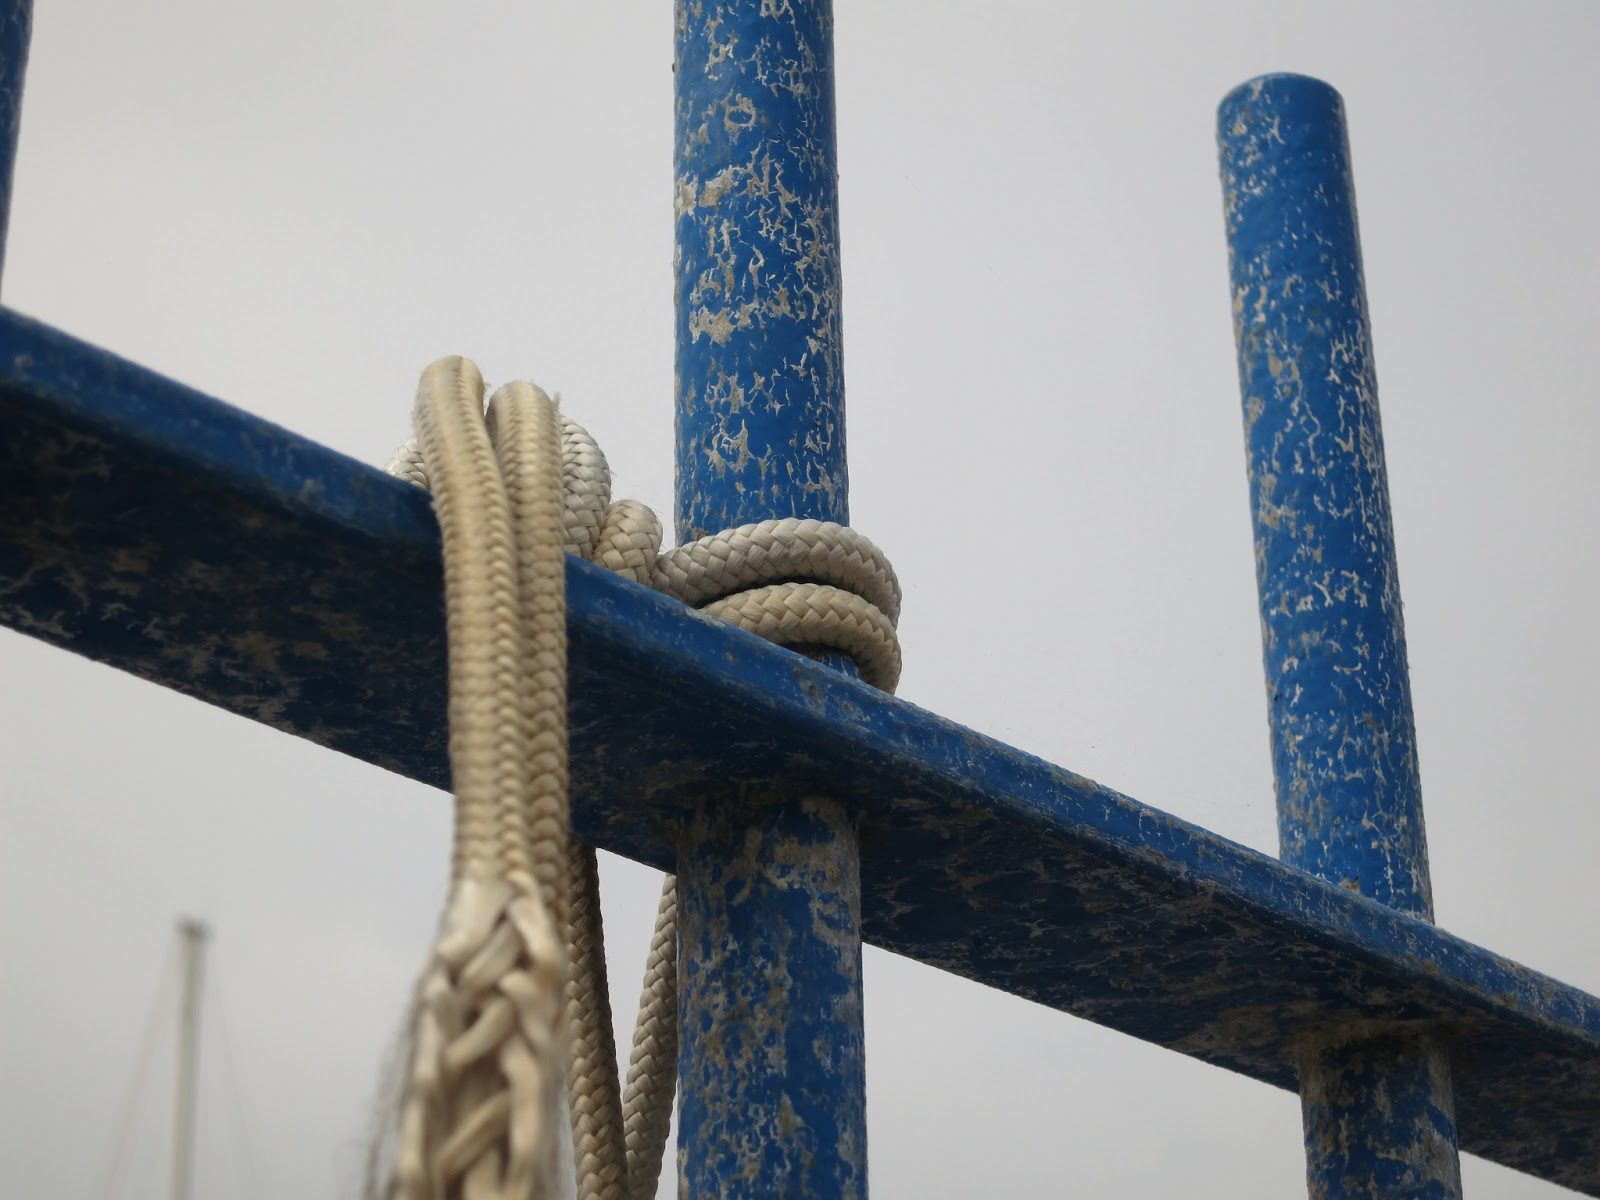 Nylon (?) rope hanging from blue railings with mast in background